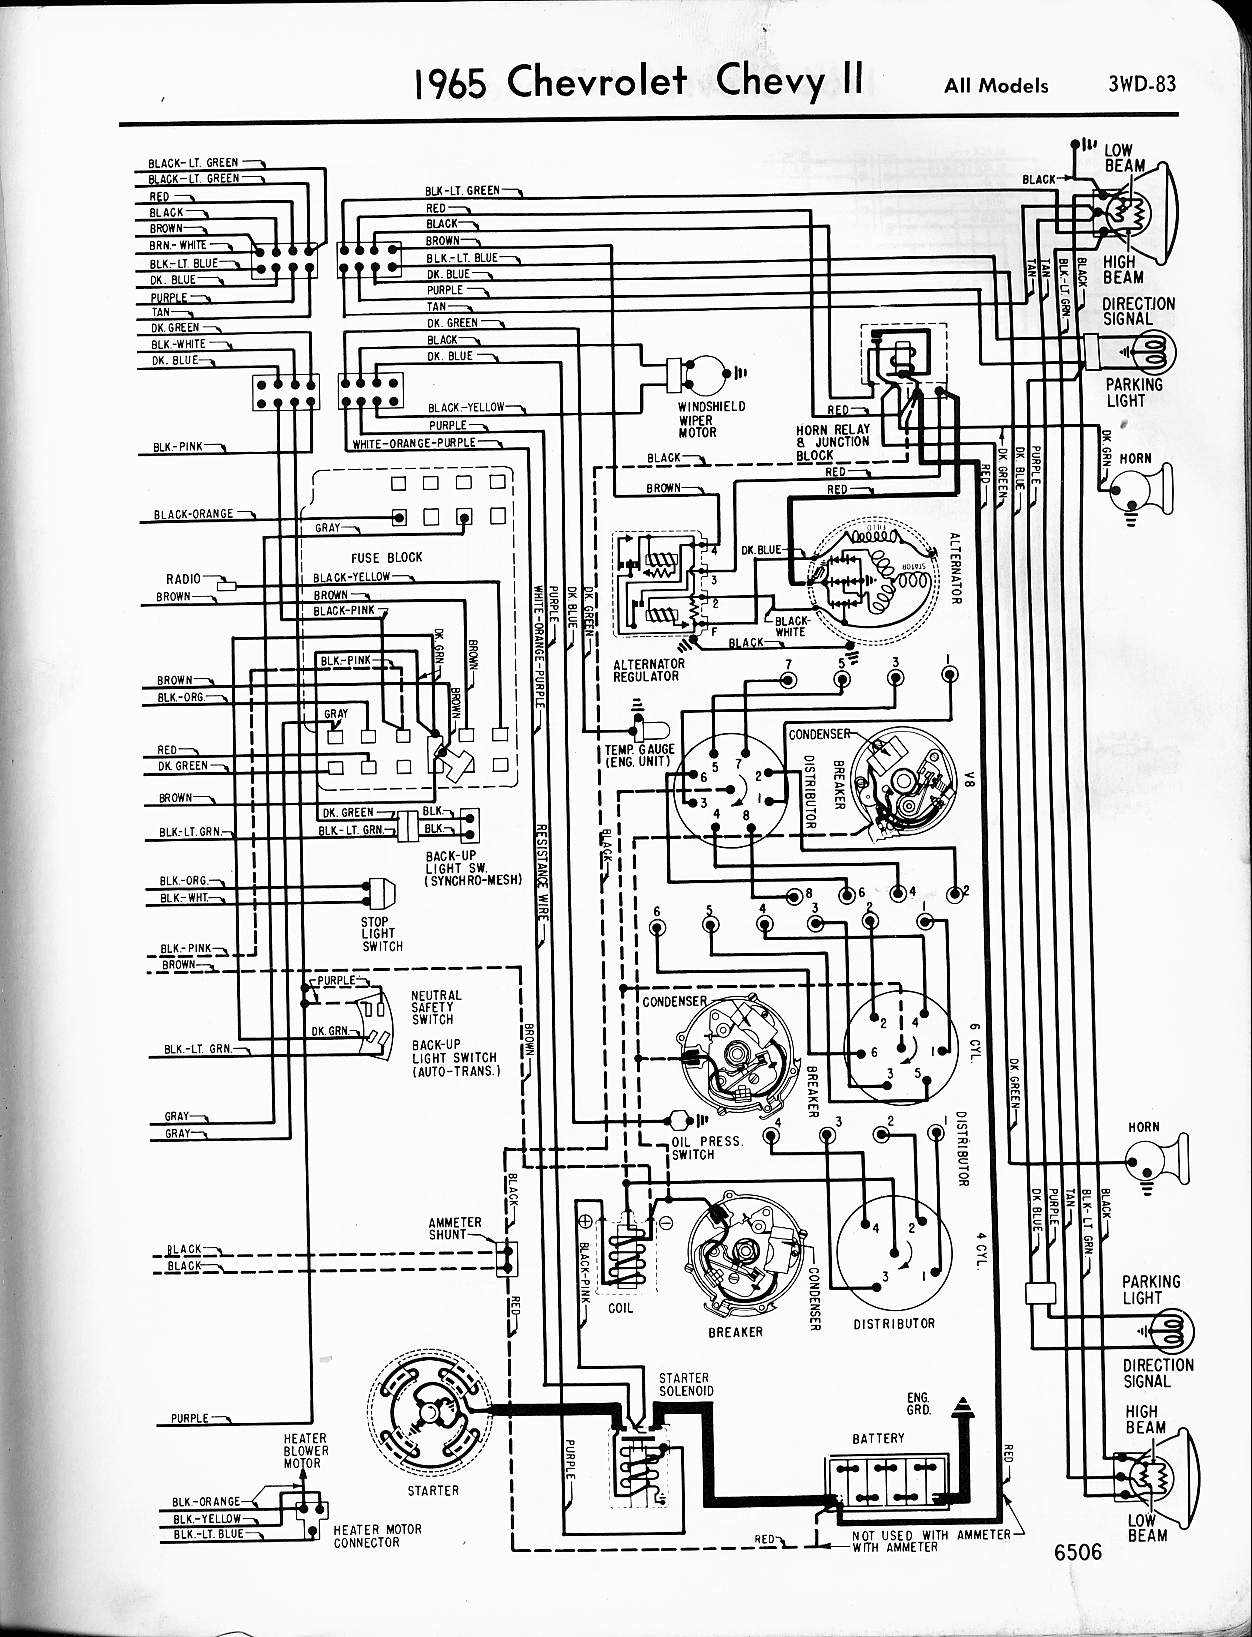 MWireChev65_3WD 083 57 65 chevy wiring diagrams 1963 chevy nova wiring diagram at crackthecode.co